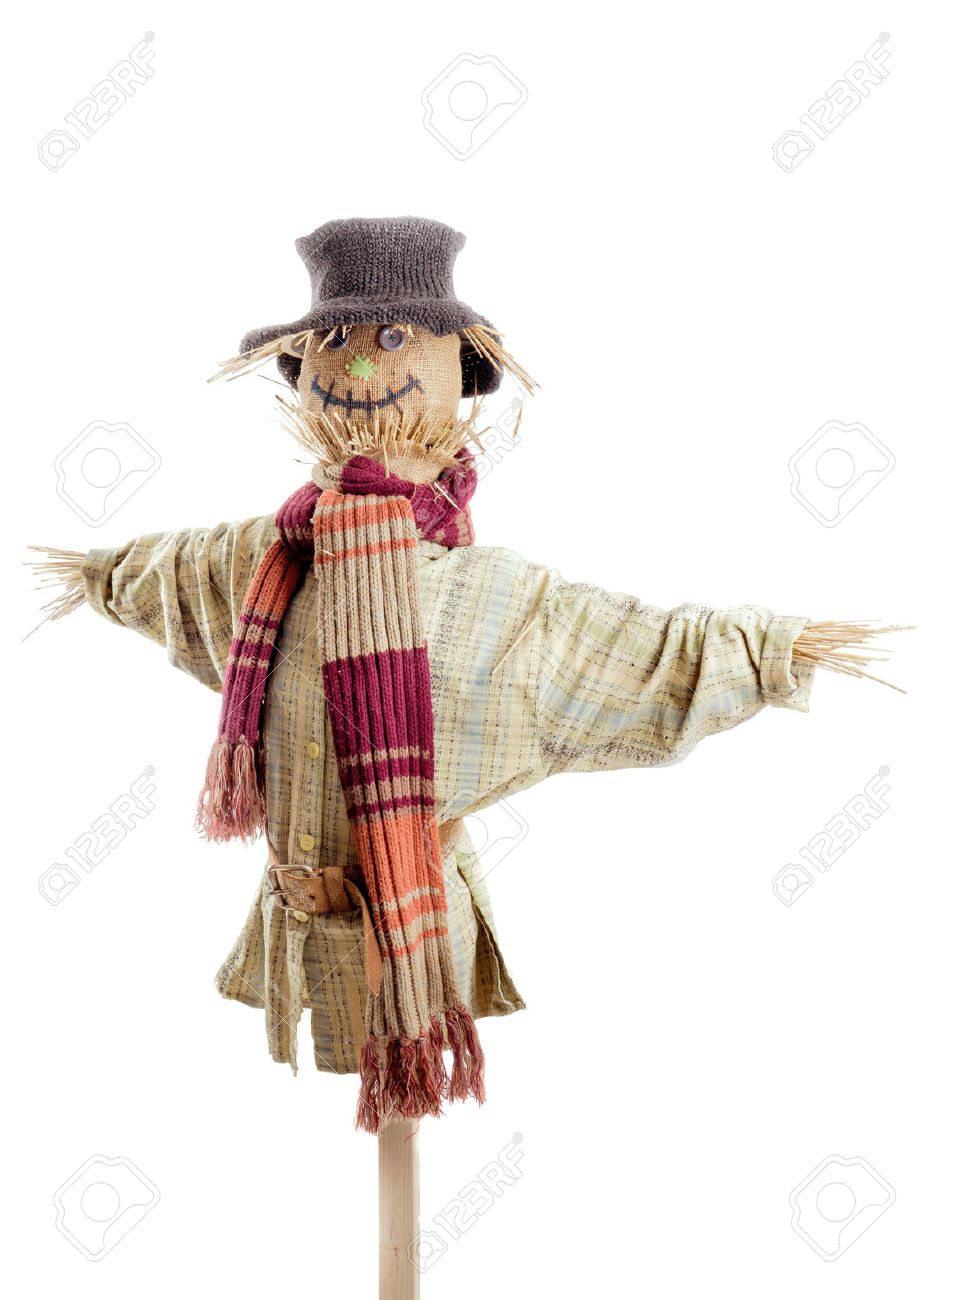 Scarecrow against the white background Stock Photo - 35024458